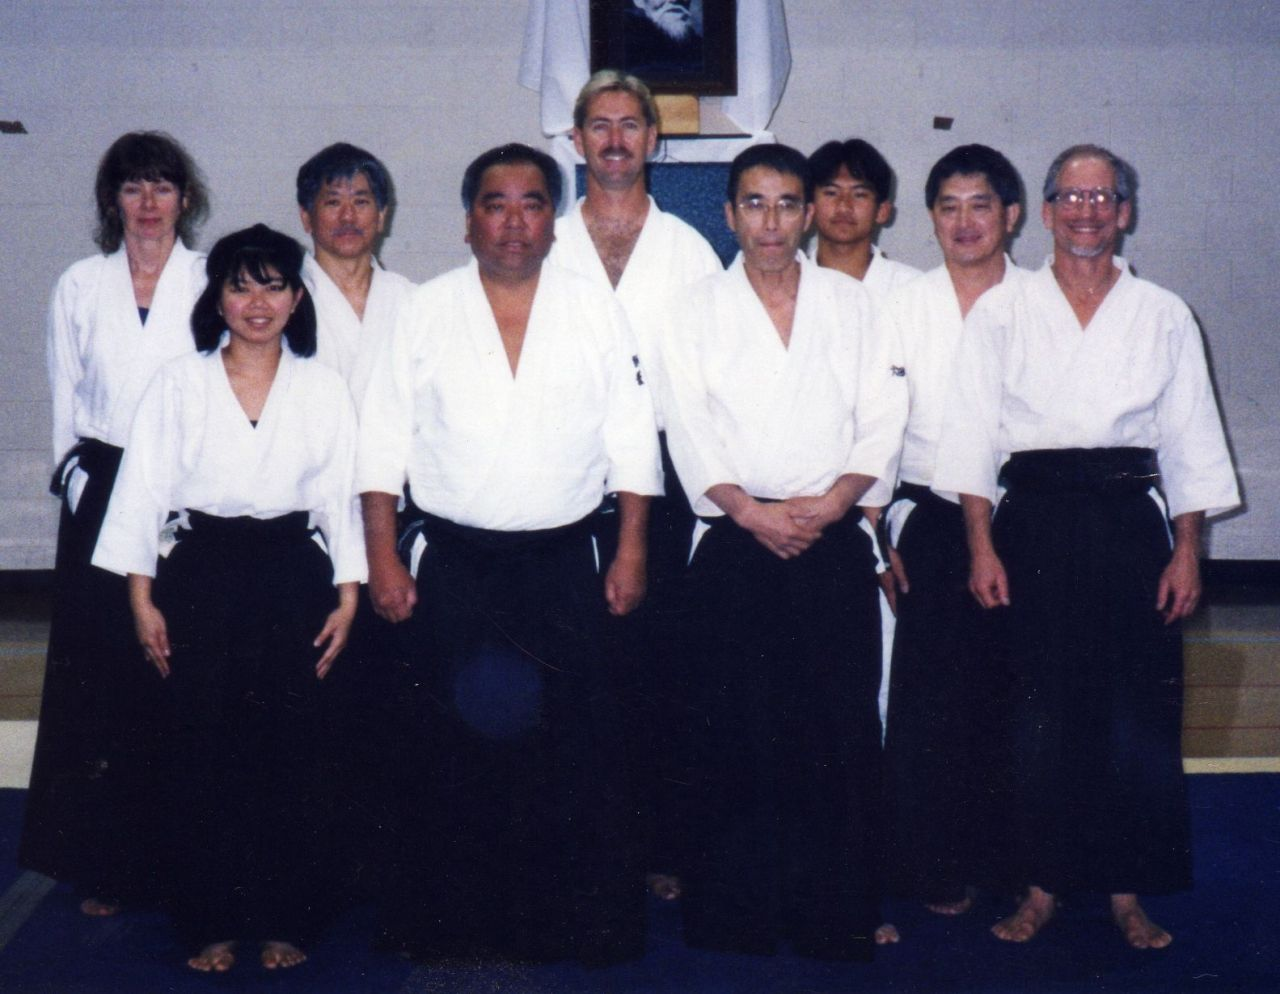 Aikido Association of America's National Instructors Seminar with Fumio Toyoda Shihan and guest instructor Kengo Hatayama Shihan Northeastern University, Chicago IL, April 22-26, 1998. Picture provided by Chushinkan Dojo.